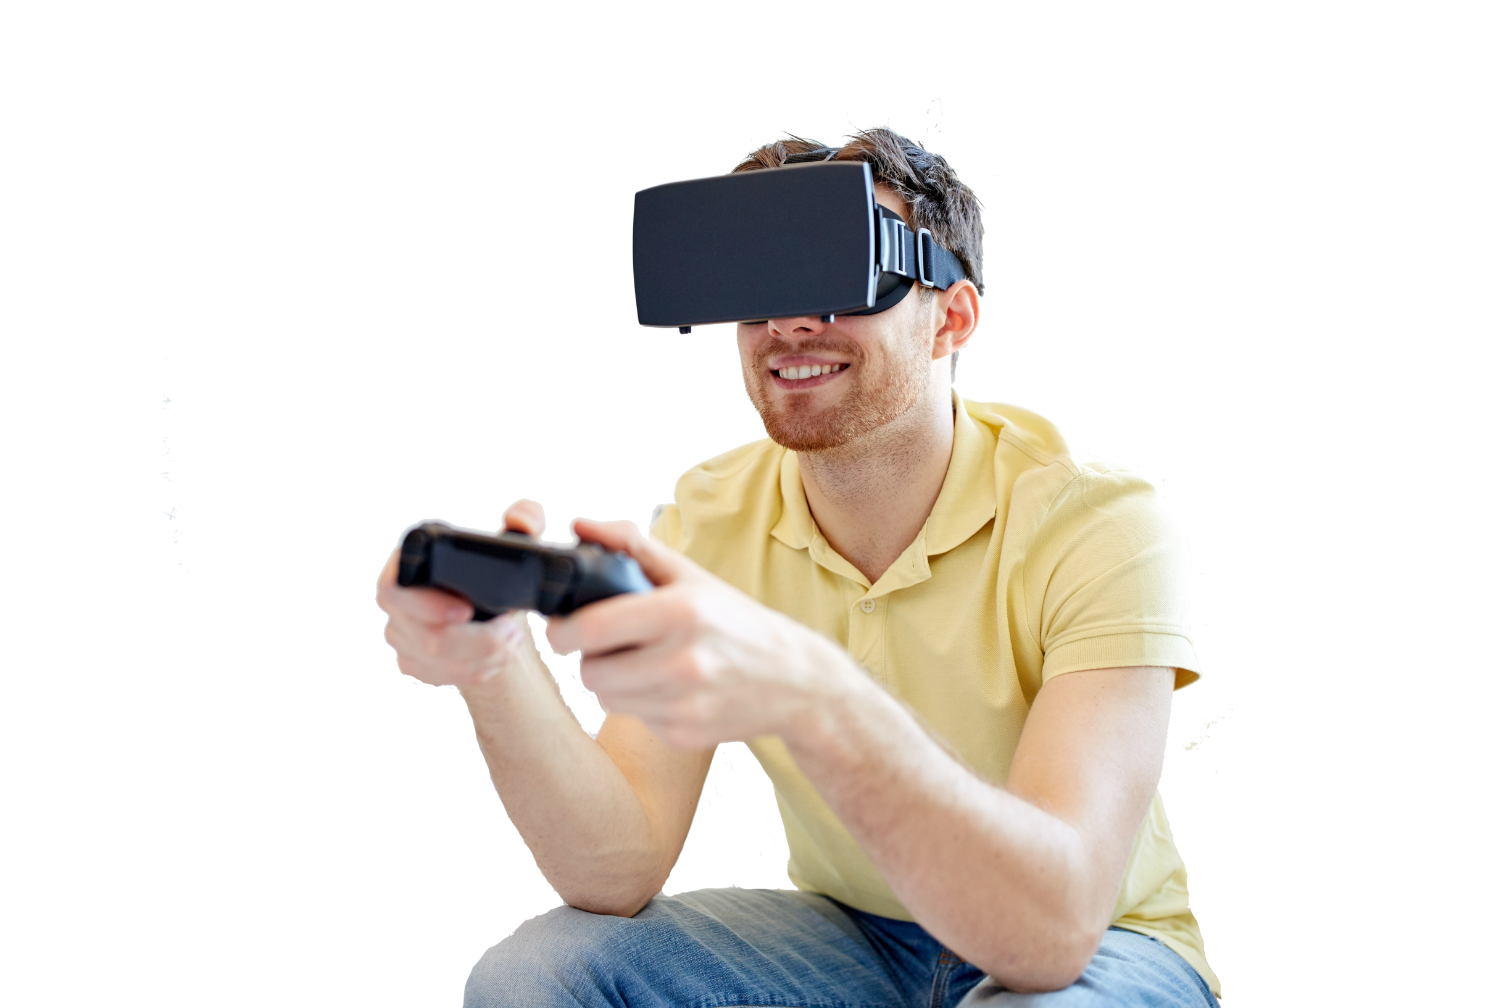 A person with VR headset on